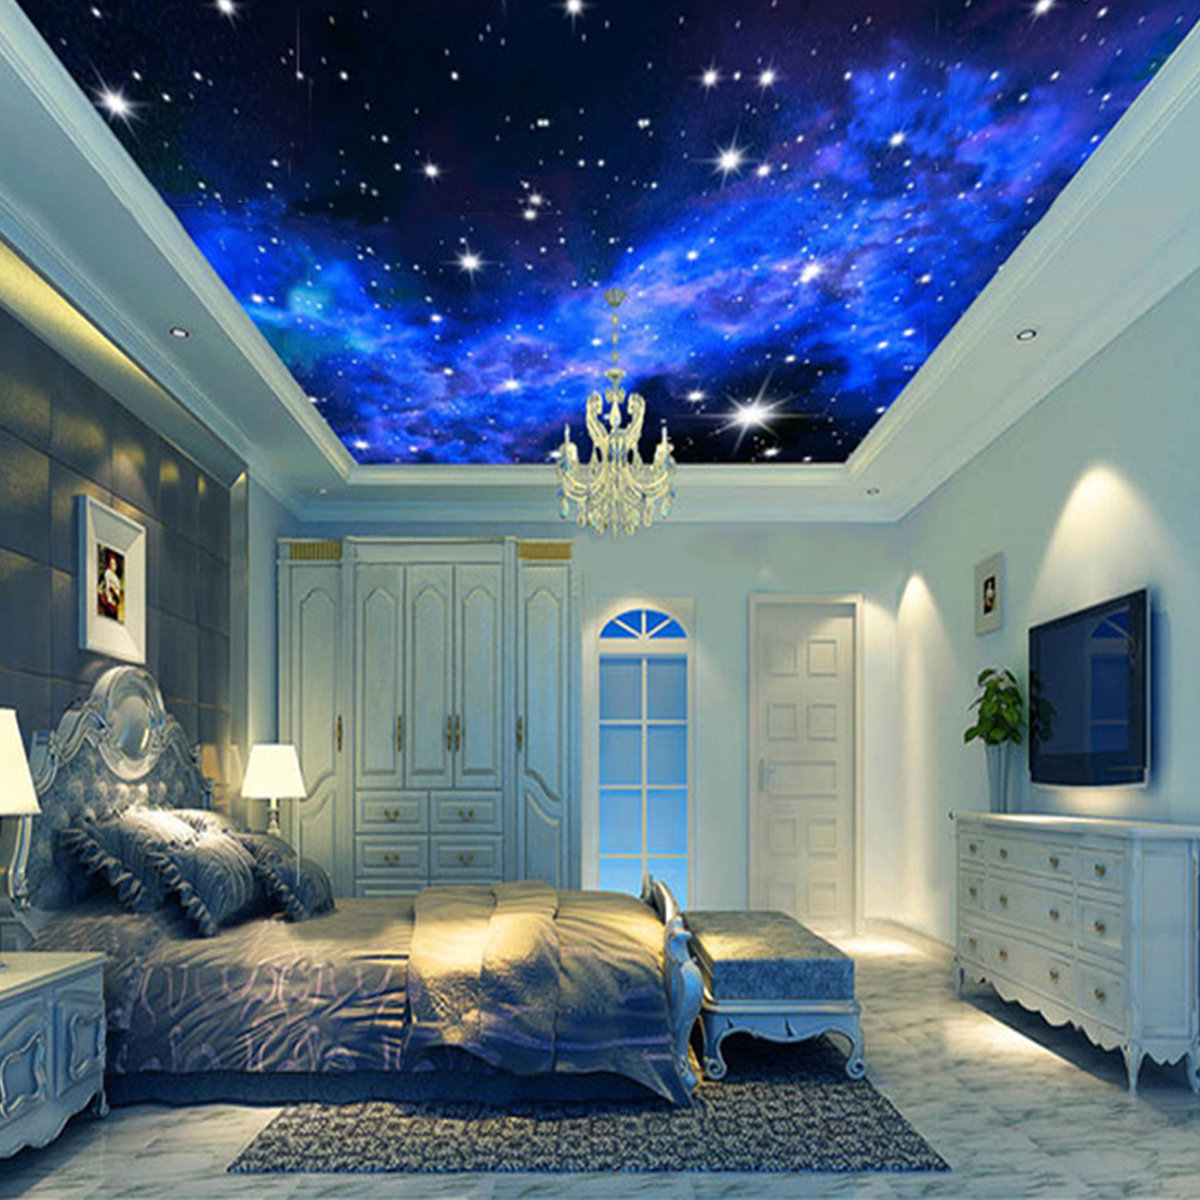 3d wallpaper mural night clouds star sky wall paper for 3d wallpaper of house